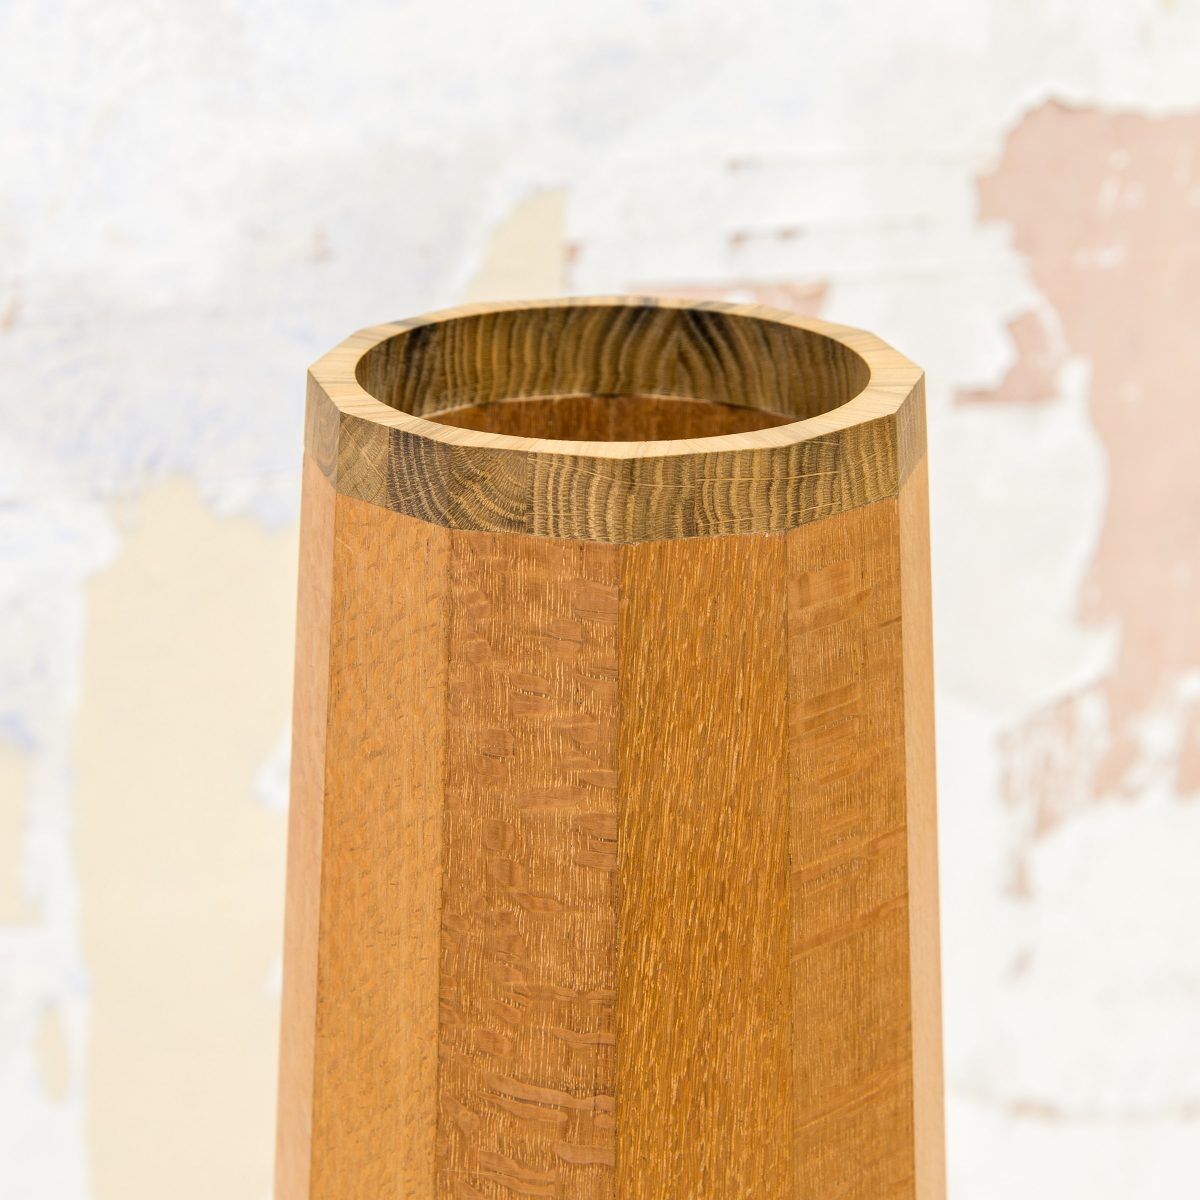 Jan Hendzel Studio kingston black oak-2